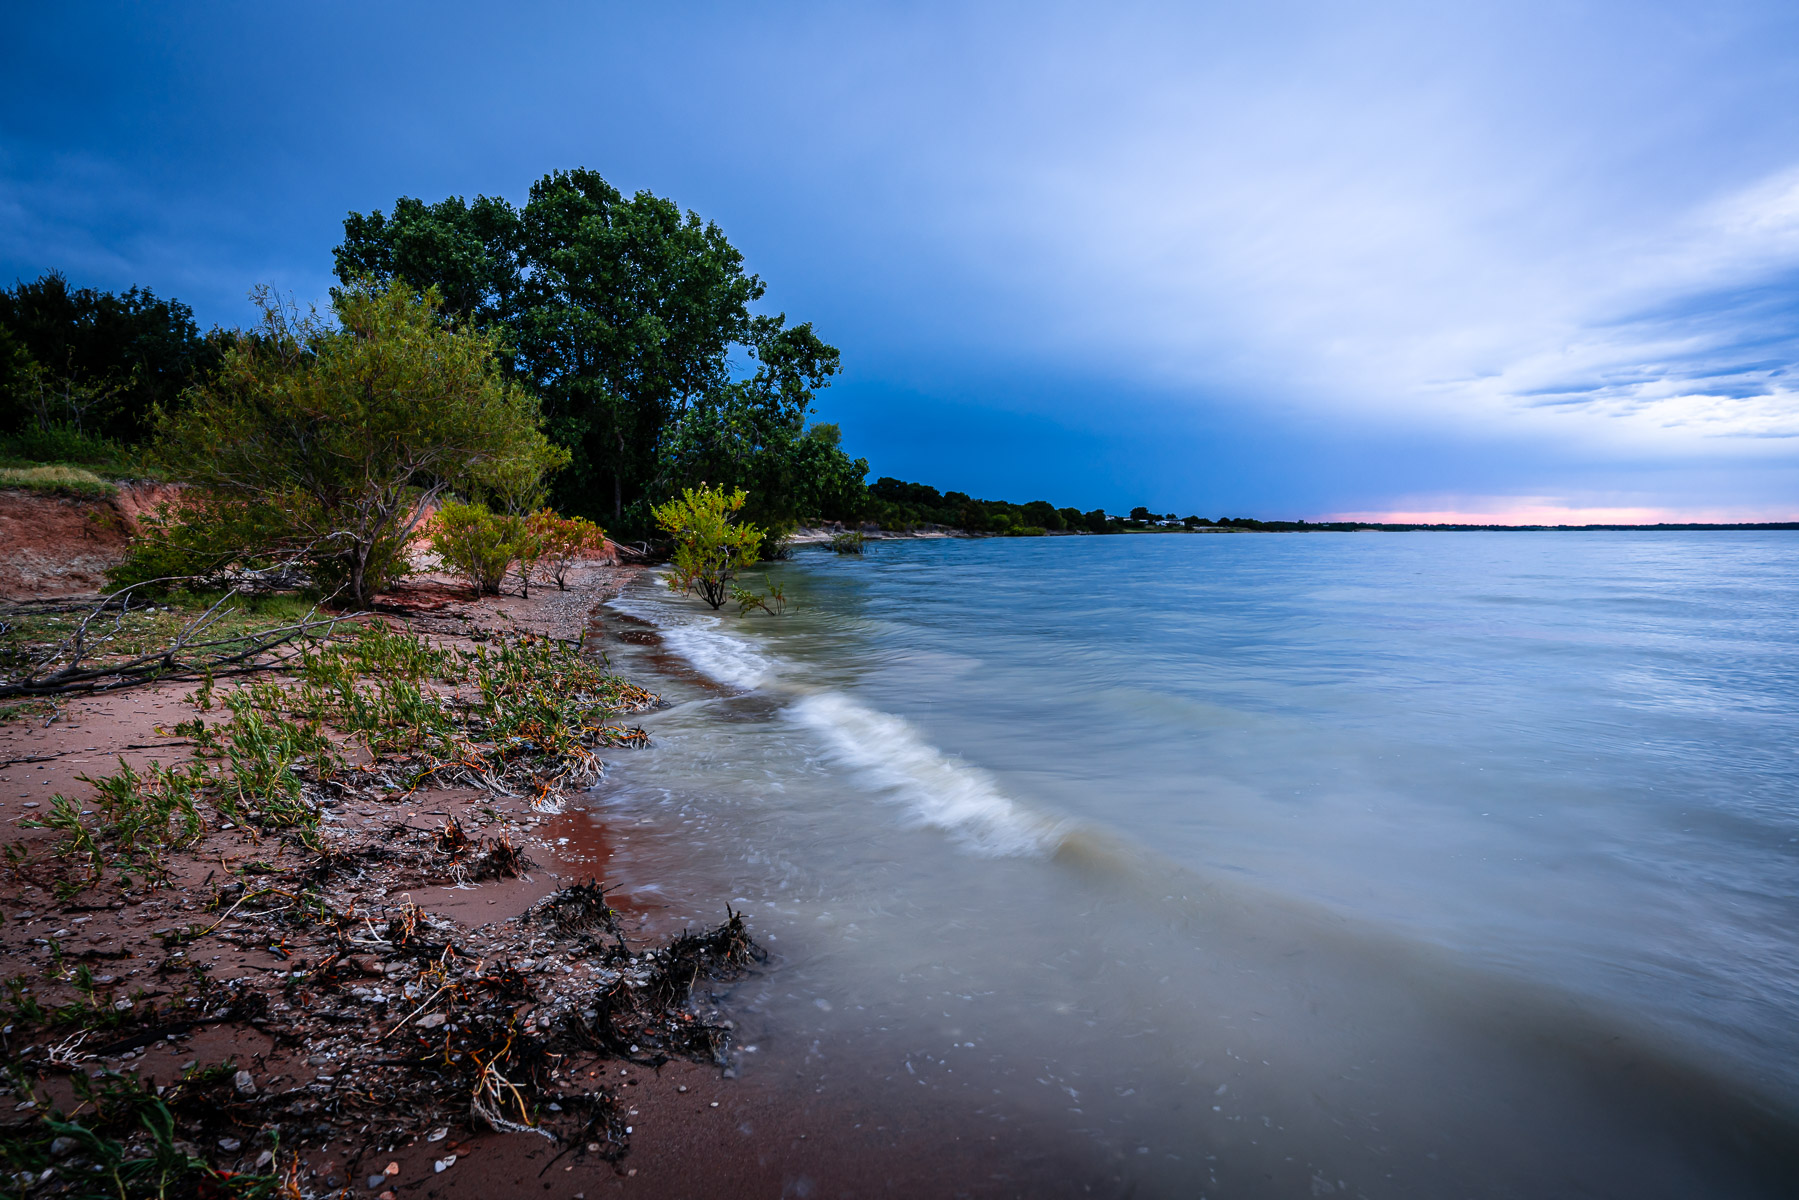 Waves roll onto shore at North Texas' Lake Lavon.